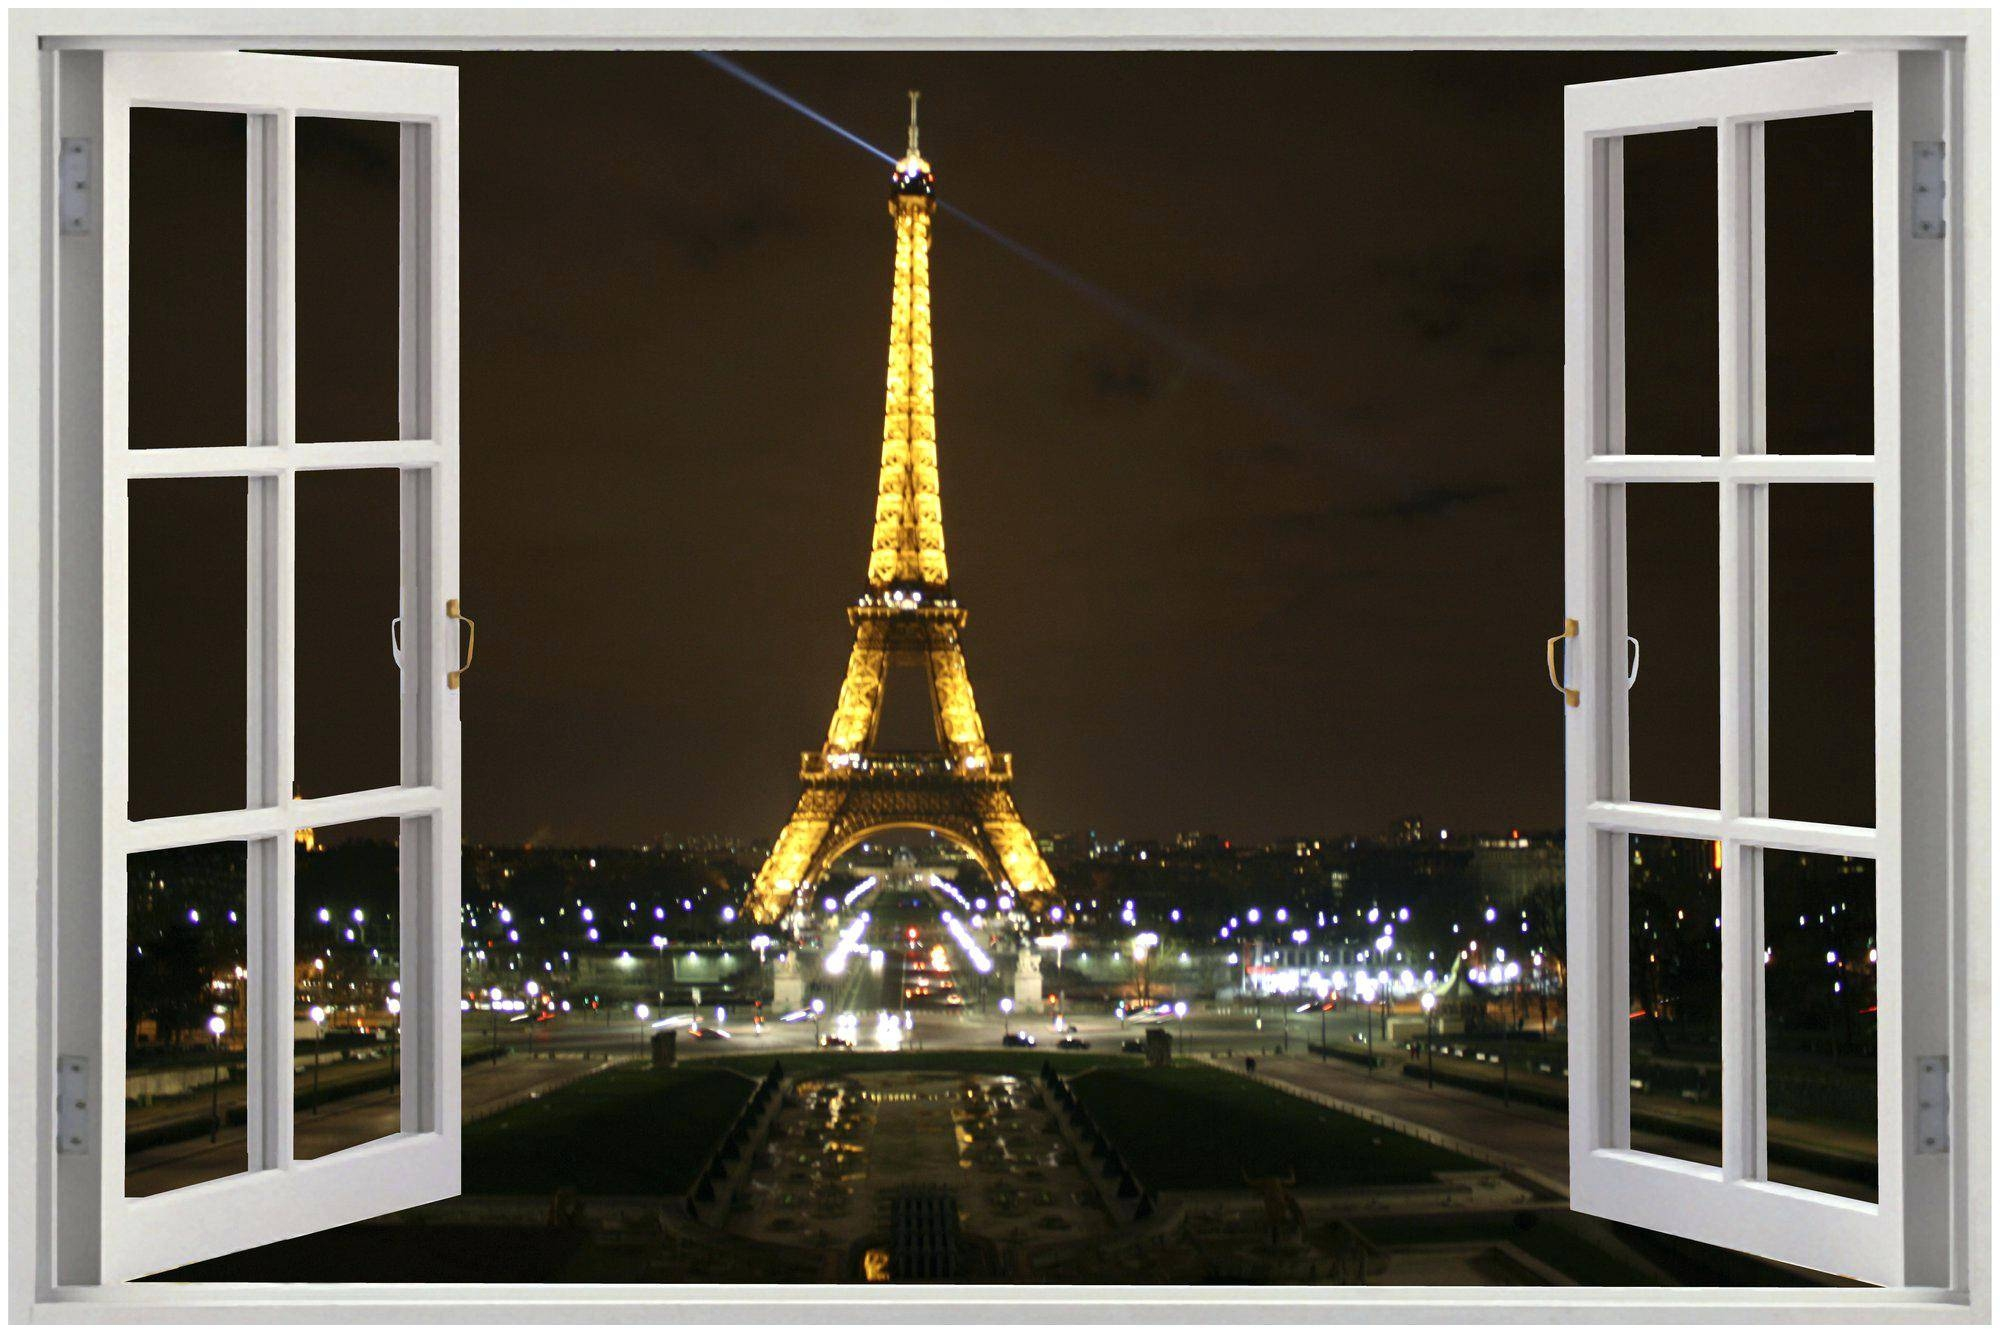 Wall Ideas : Eiffel Tower Wall Art With Lights Eiffel Tower Wall In Most Recent Metal Eiffel Tower Wall Art (View 8 of 30)